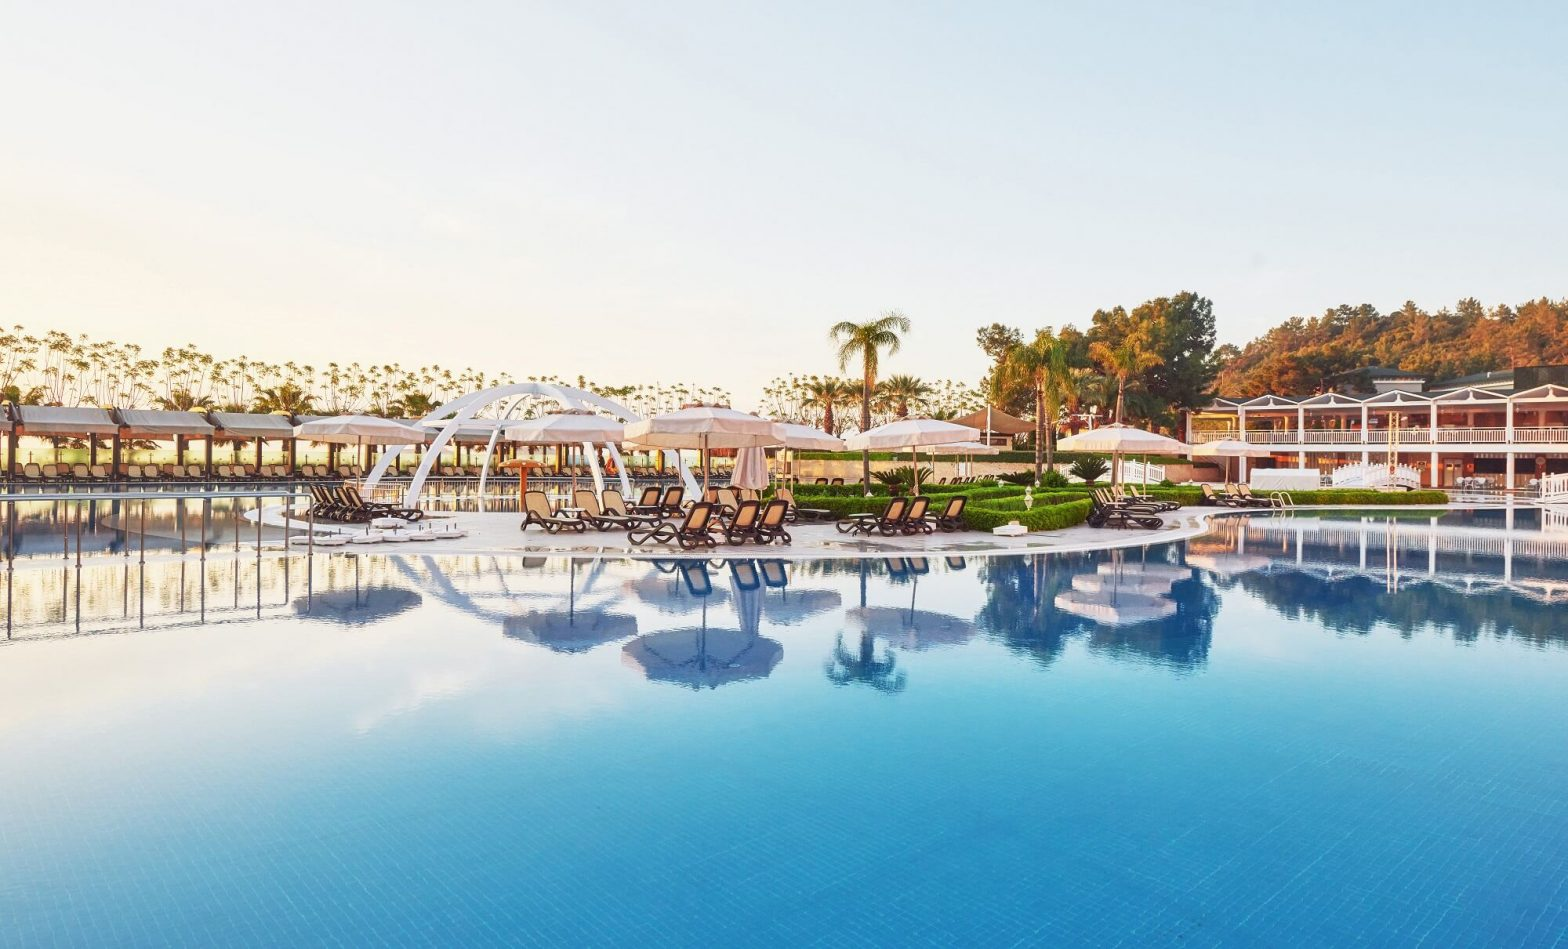 Swimming Pool and Beach of Luxury Hotel